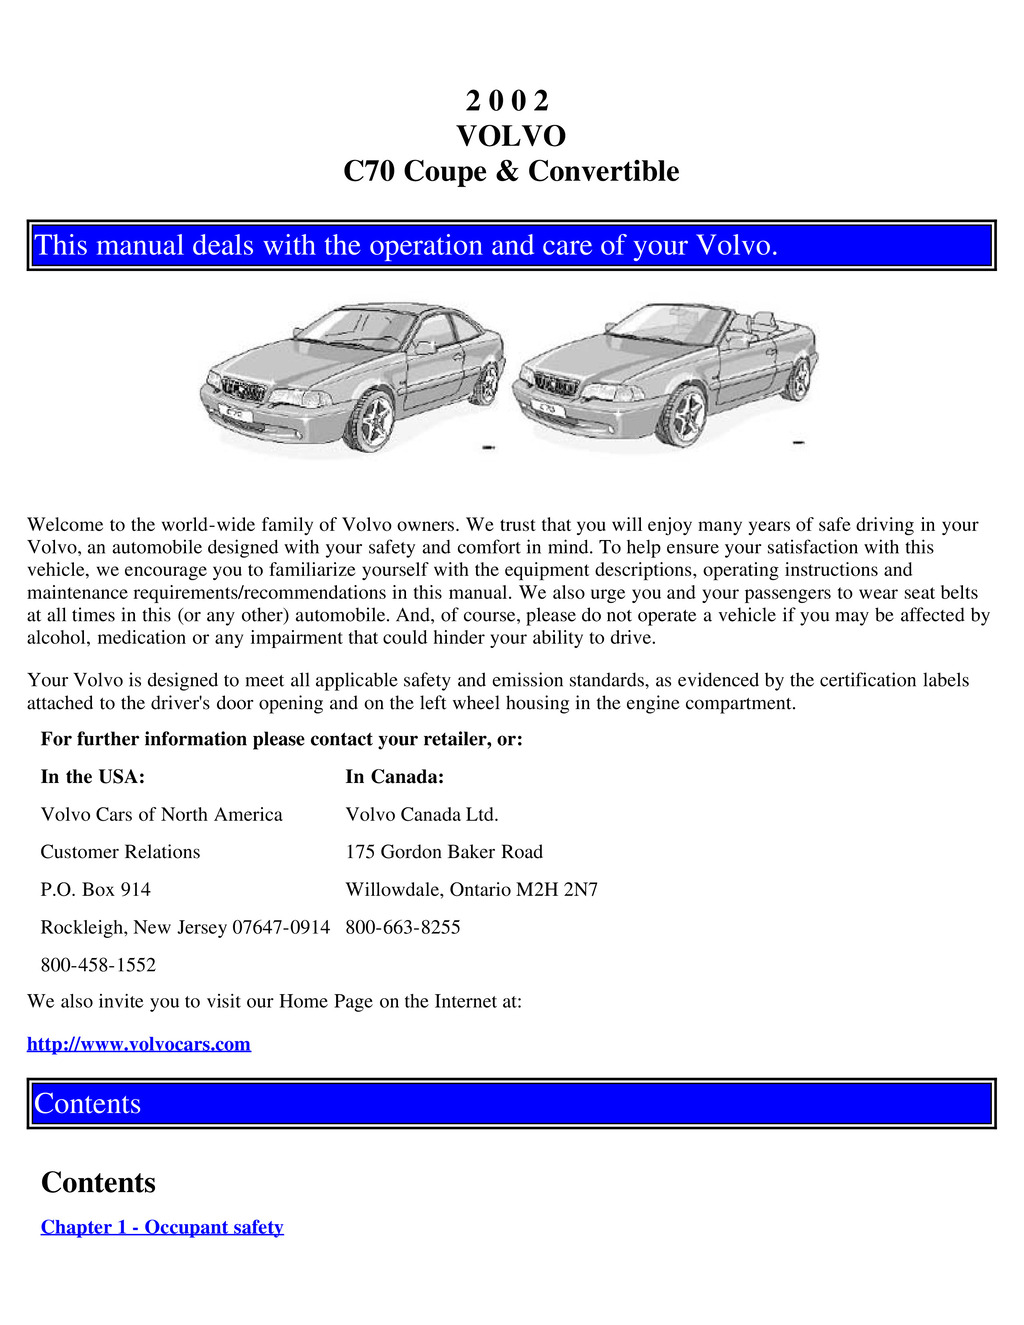 2002 Volvo C70 owners manual